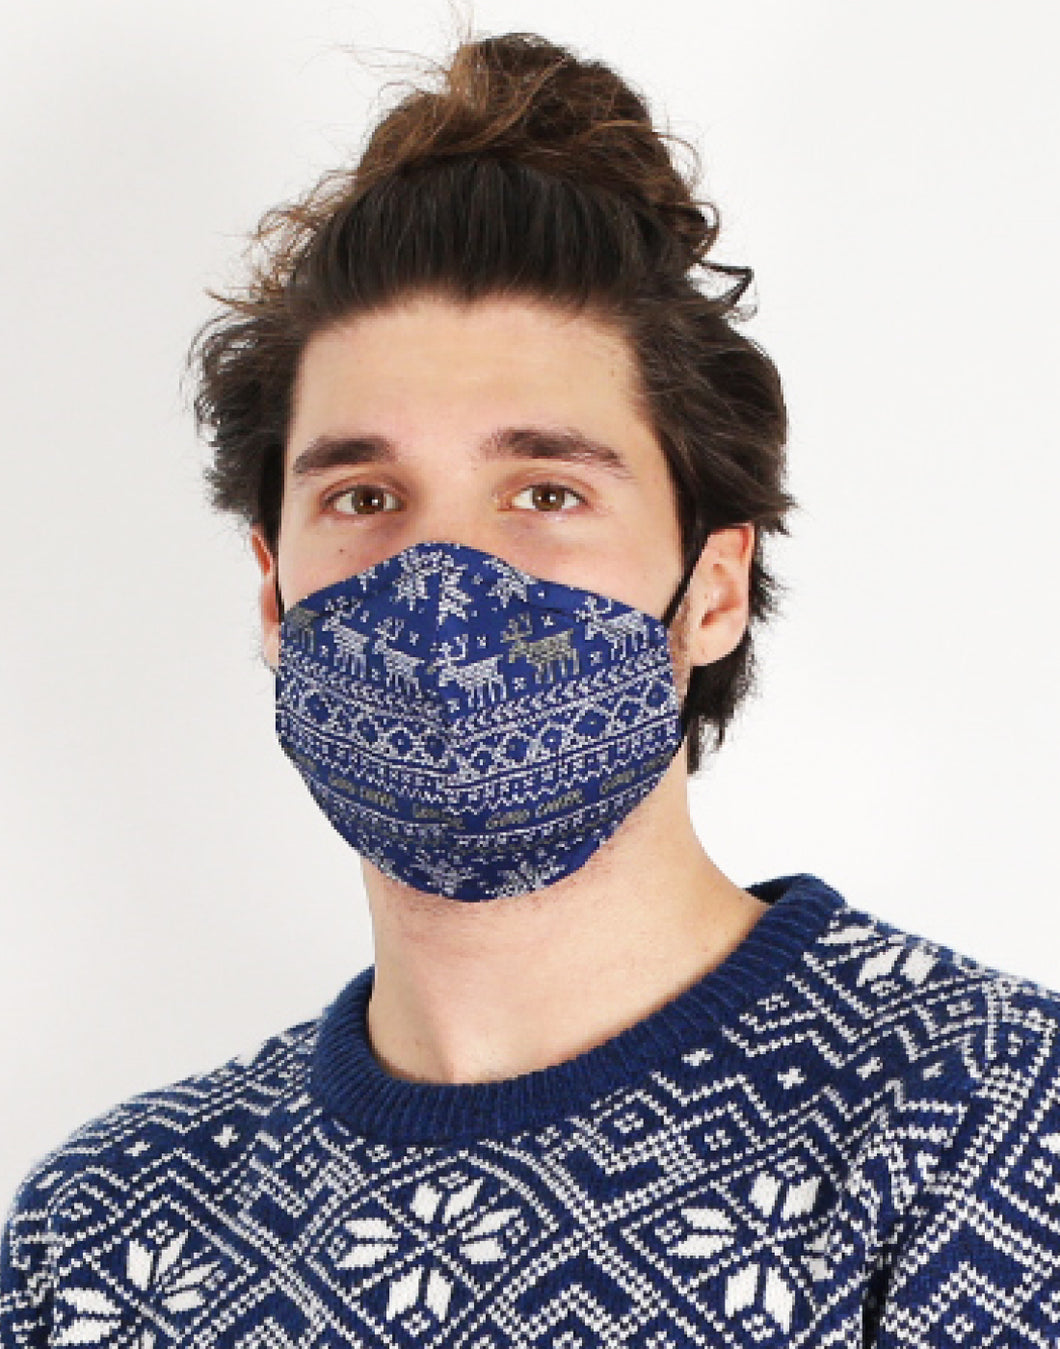 Hoxton Mask - Ugly Christmas Mask - Blue (LIMITED EDITION)